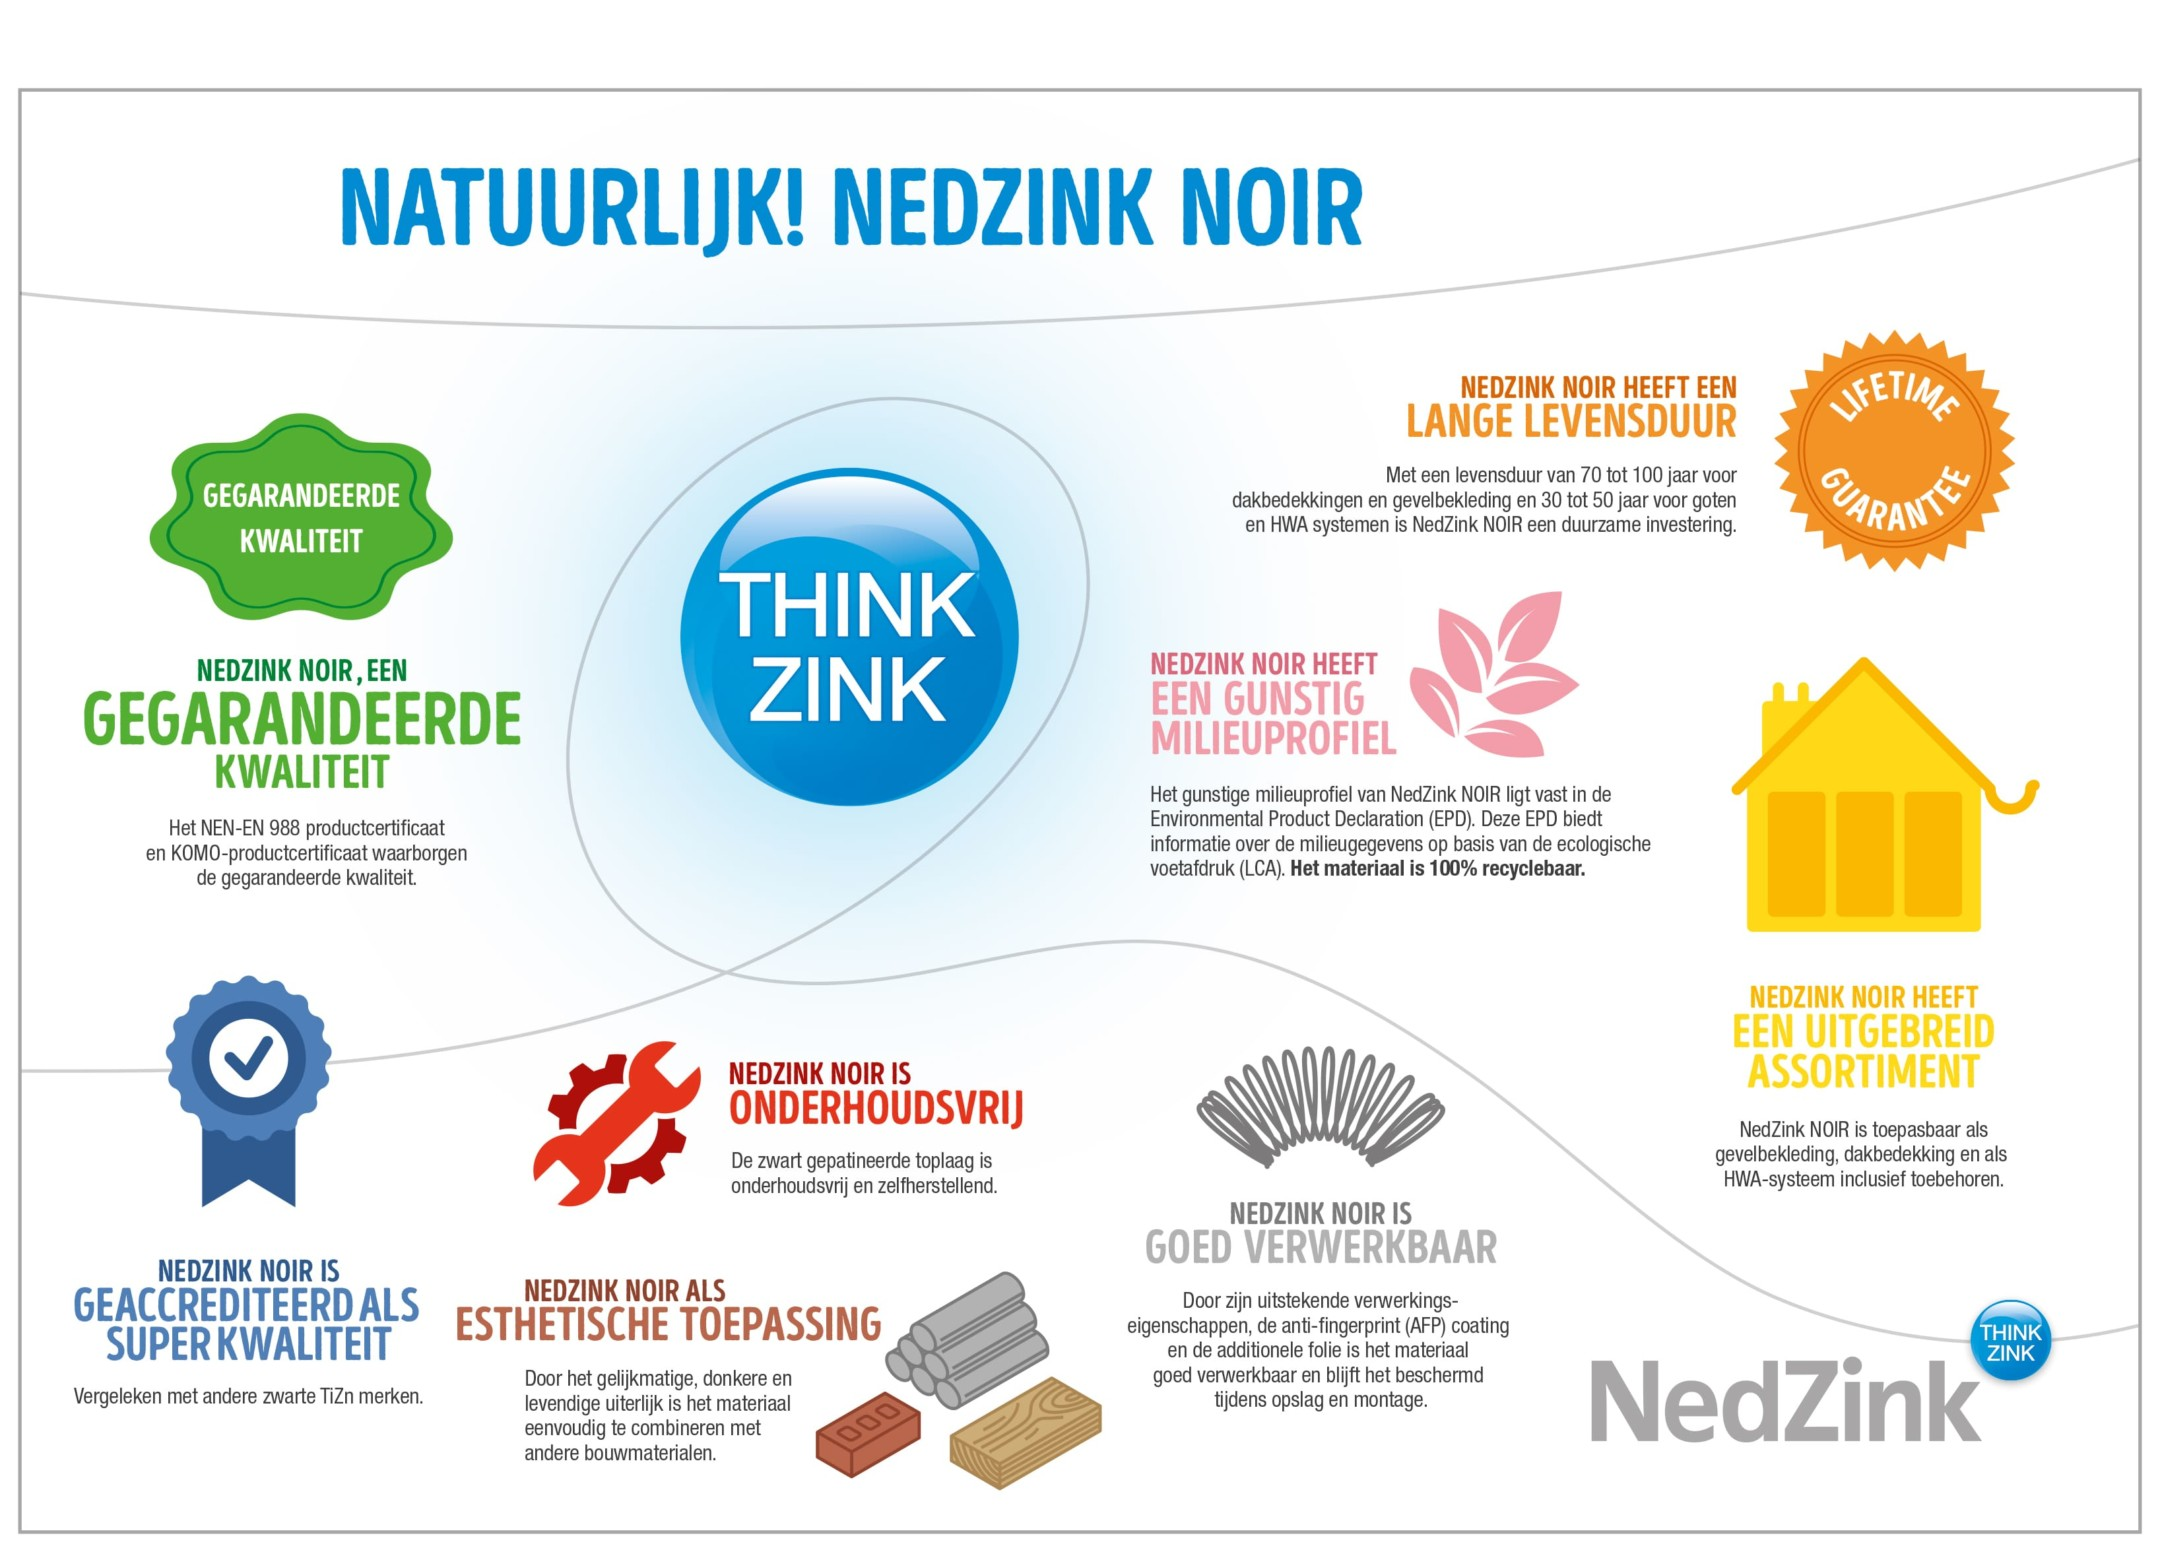 29432-nz-infographic-nedzink-noir-edit-min